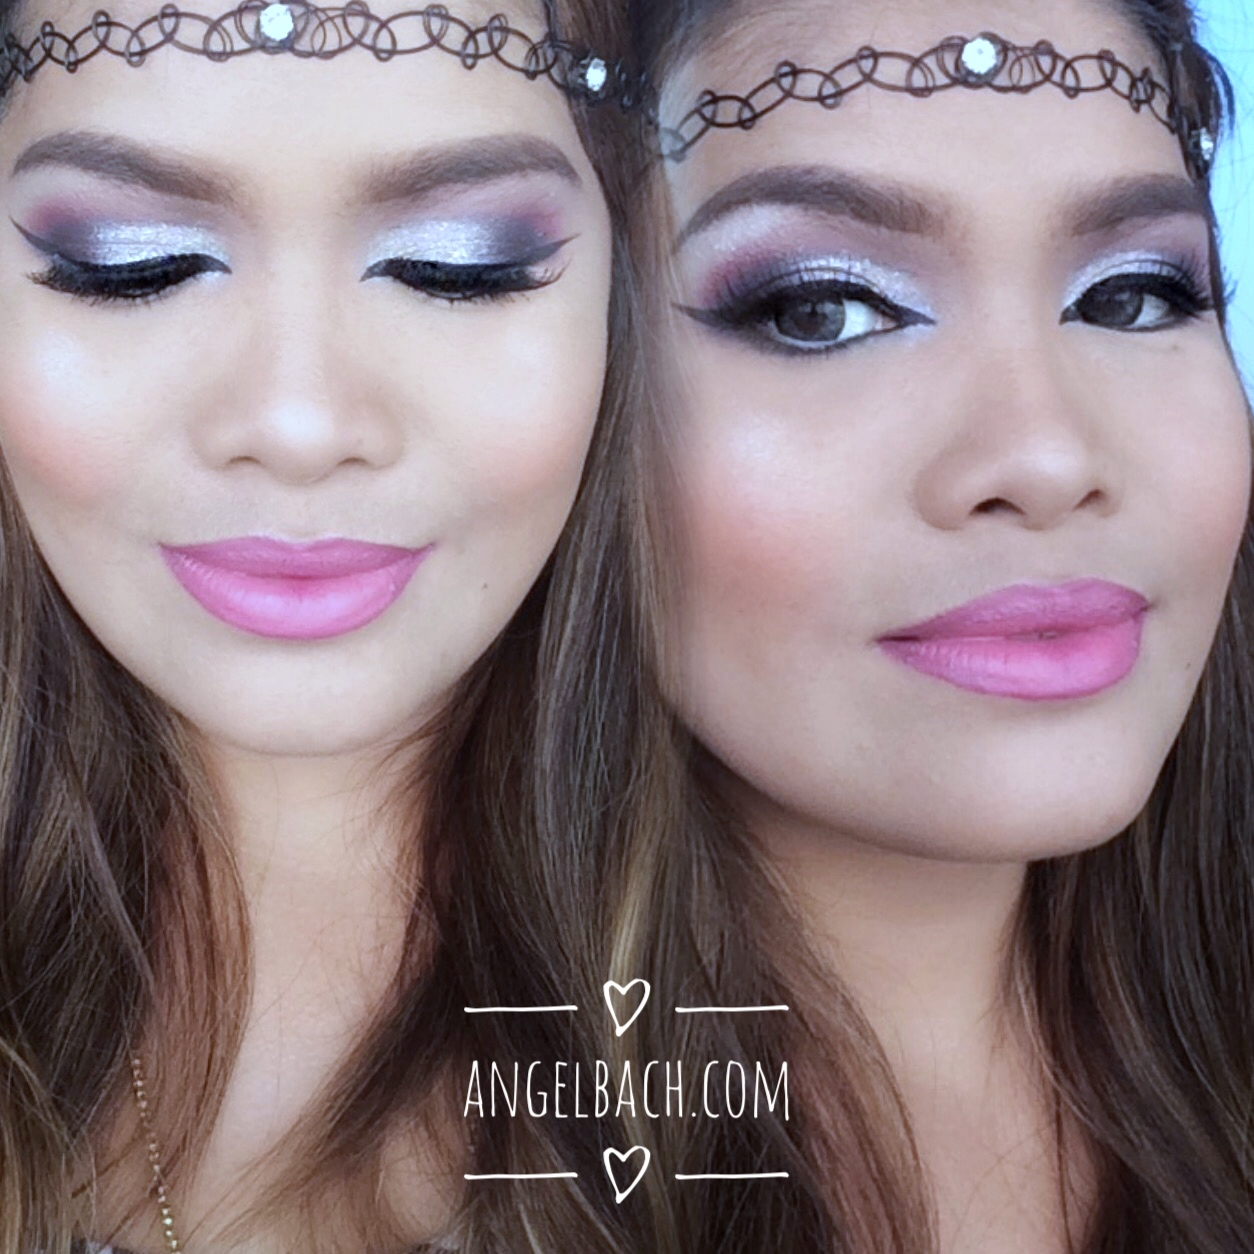 Arabian look, half cut crease, silver crease, pink lipstick, cat eye, wing eyeliner, angel bach artistry, makeup artist